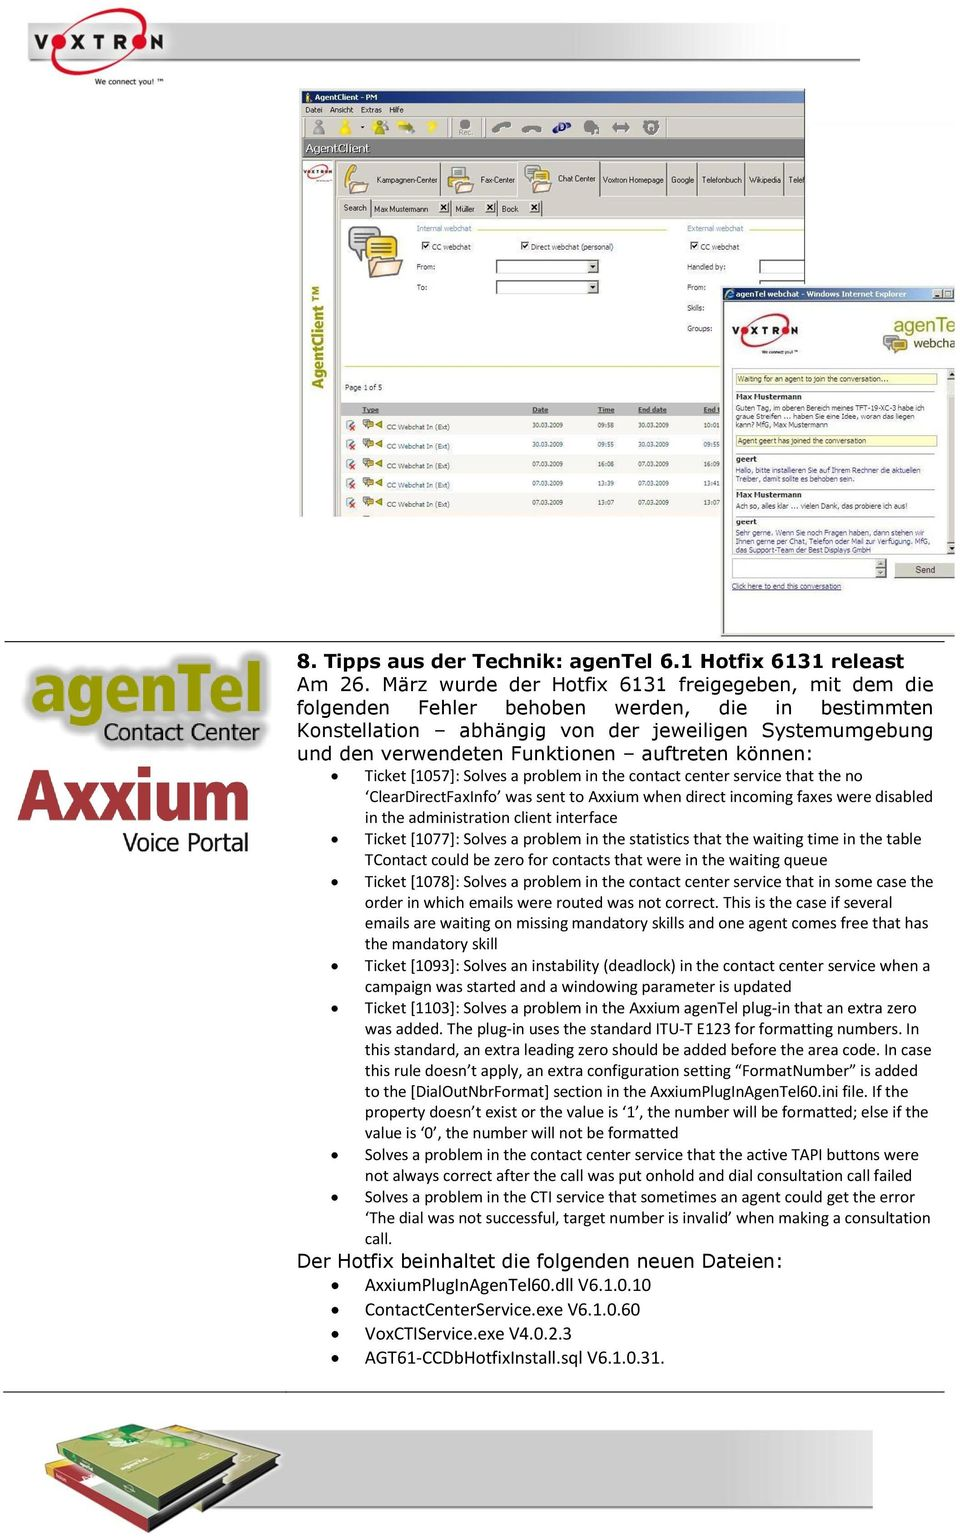 auftreten können: Ticket [1057]: Solves a problem in the contact center service that the no ClearDirectFaxInfo was sent to Axxium when direct incoming faxes were disabled in the administration client